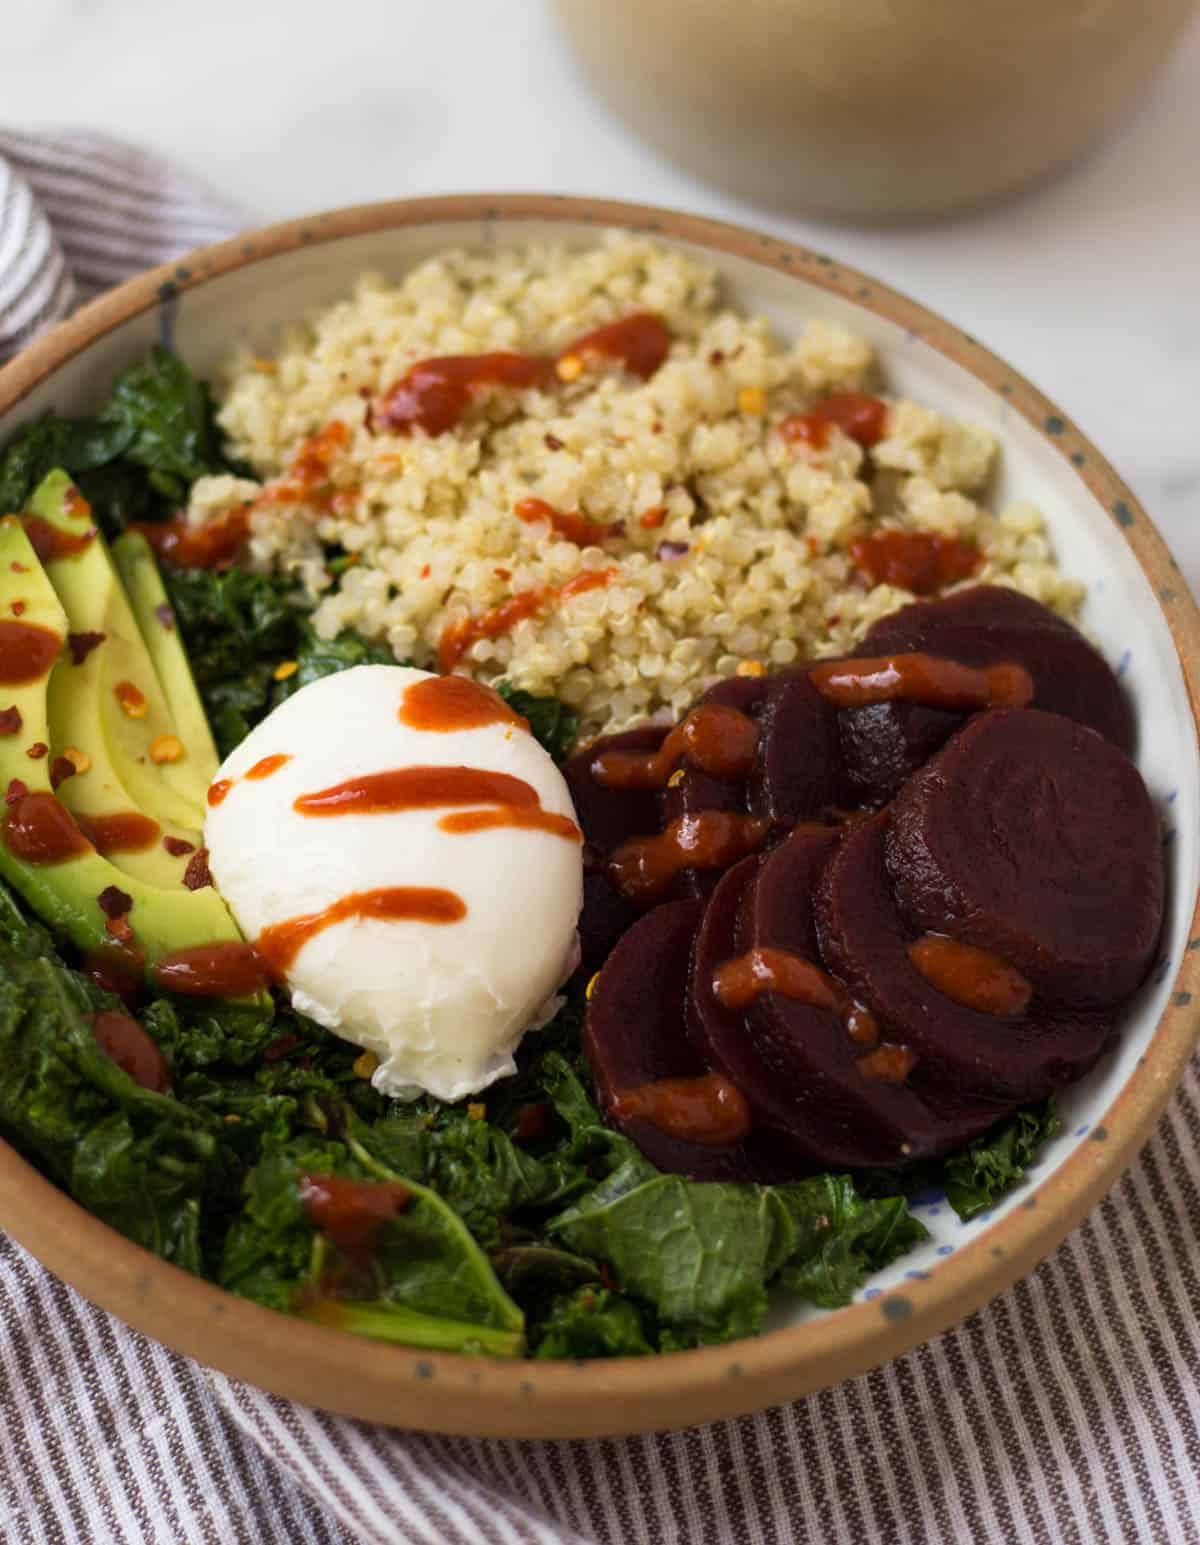 Beet Quinoa Breakfast Bowls come together in under 10 mins and make a healthy and easy gluten free and vegetarian breakfast - great for meal prep or on-the-go! - Eat the Gains